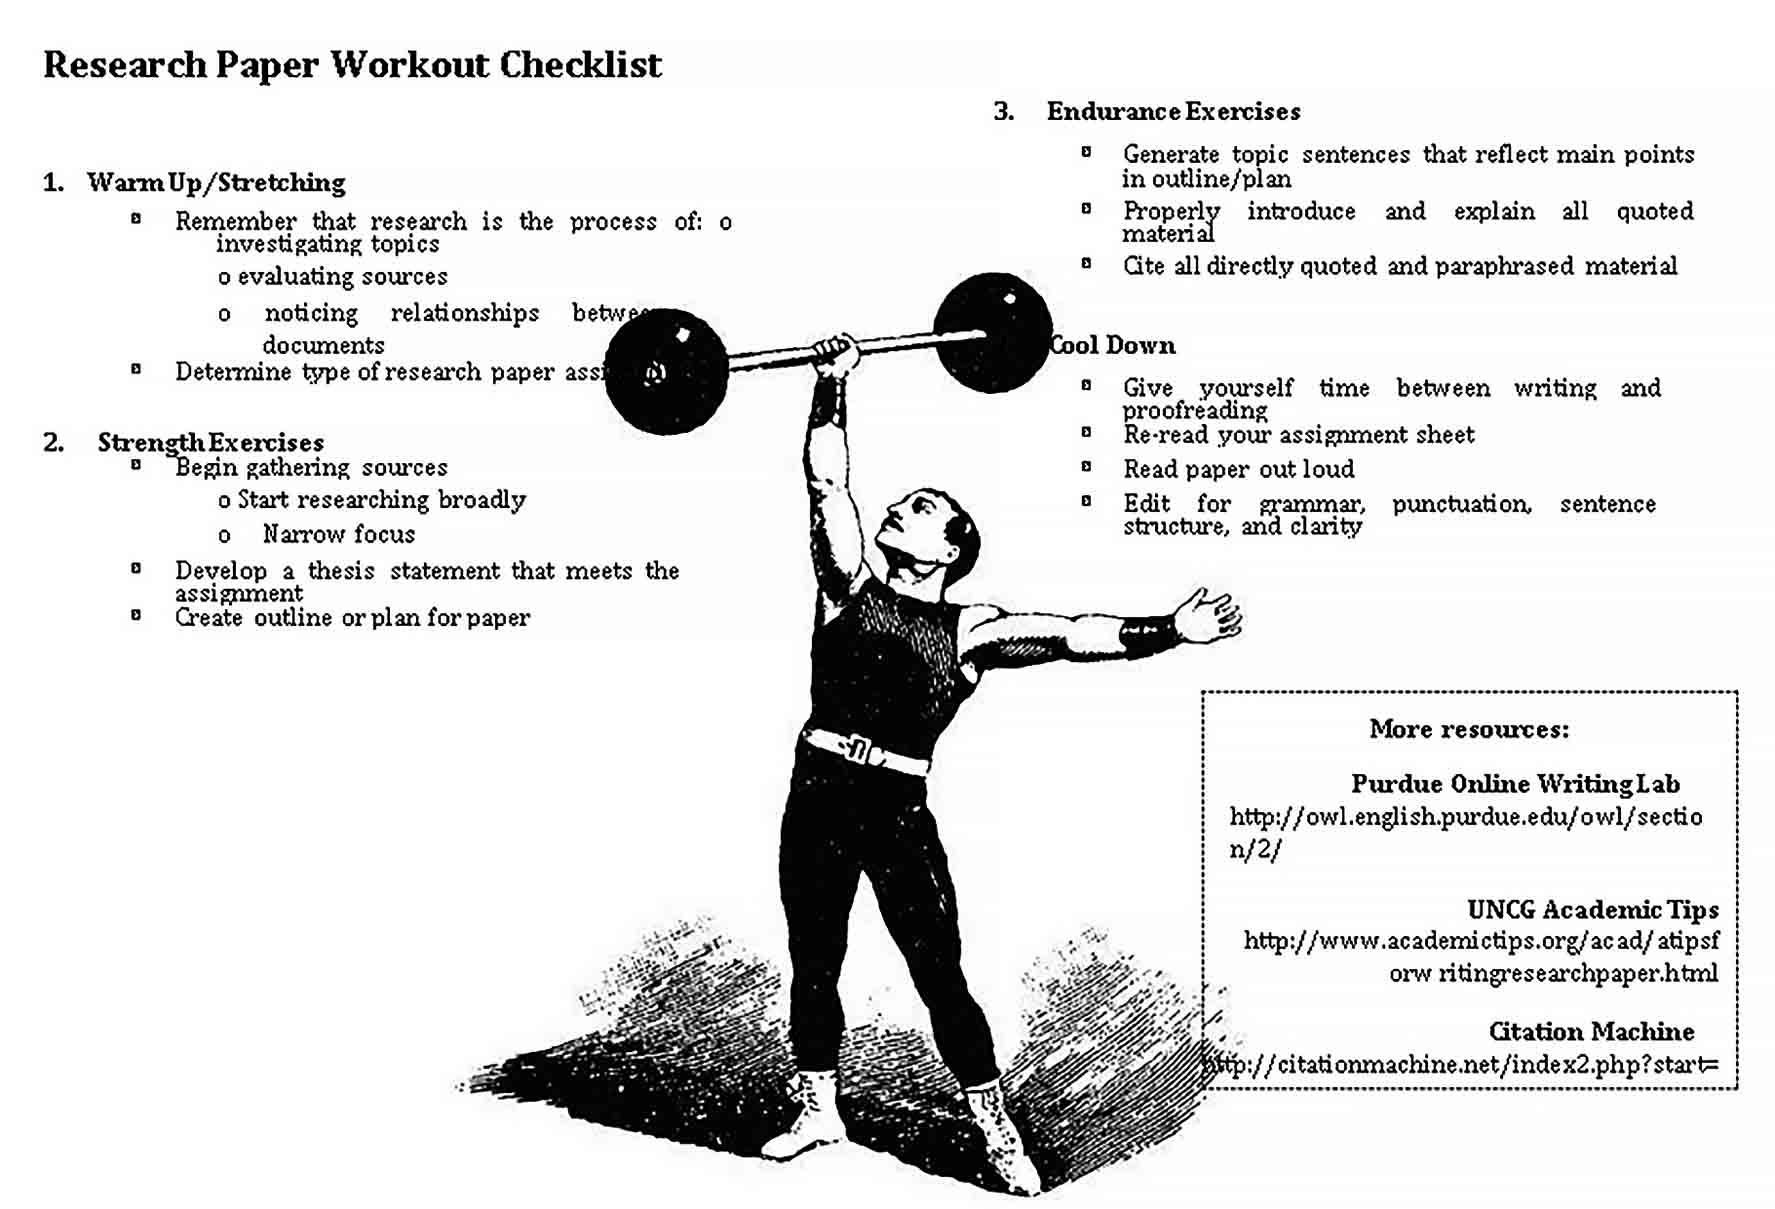 Template Printable Workout Checklist Template